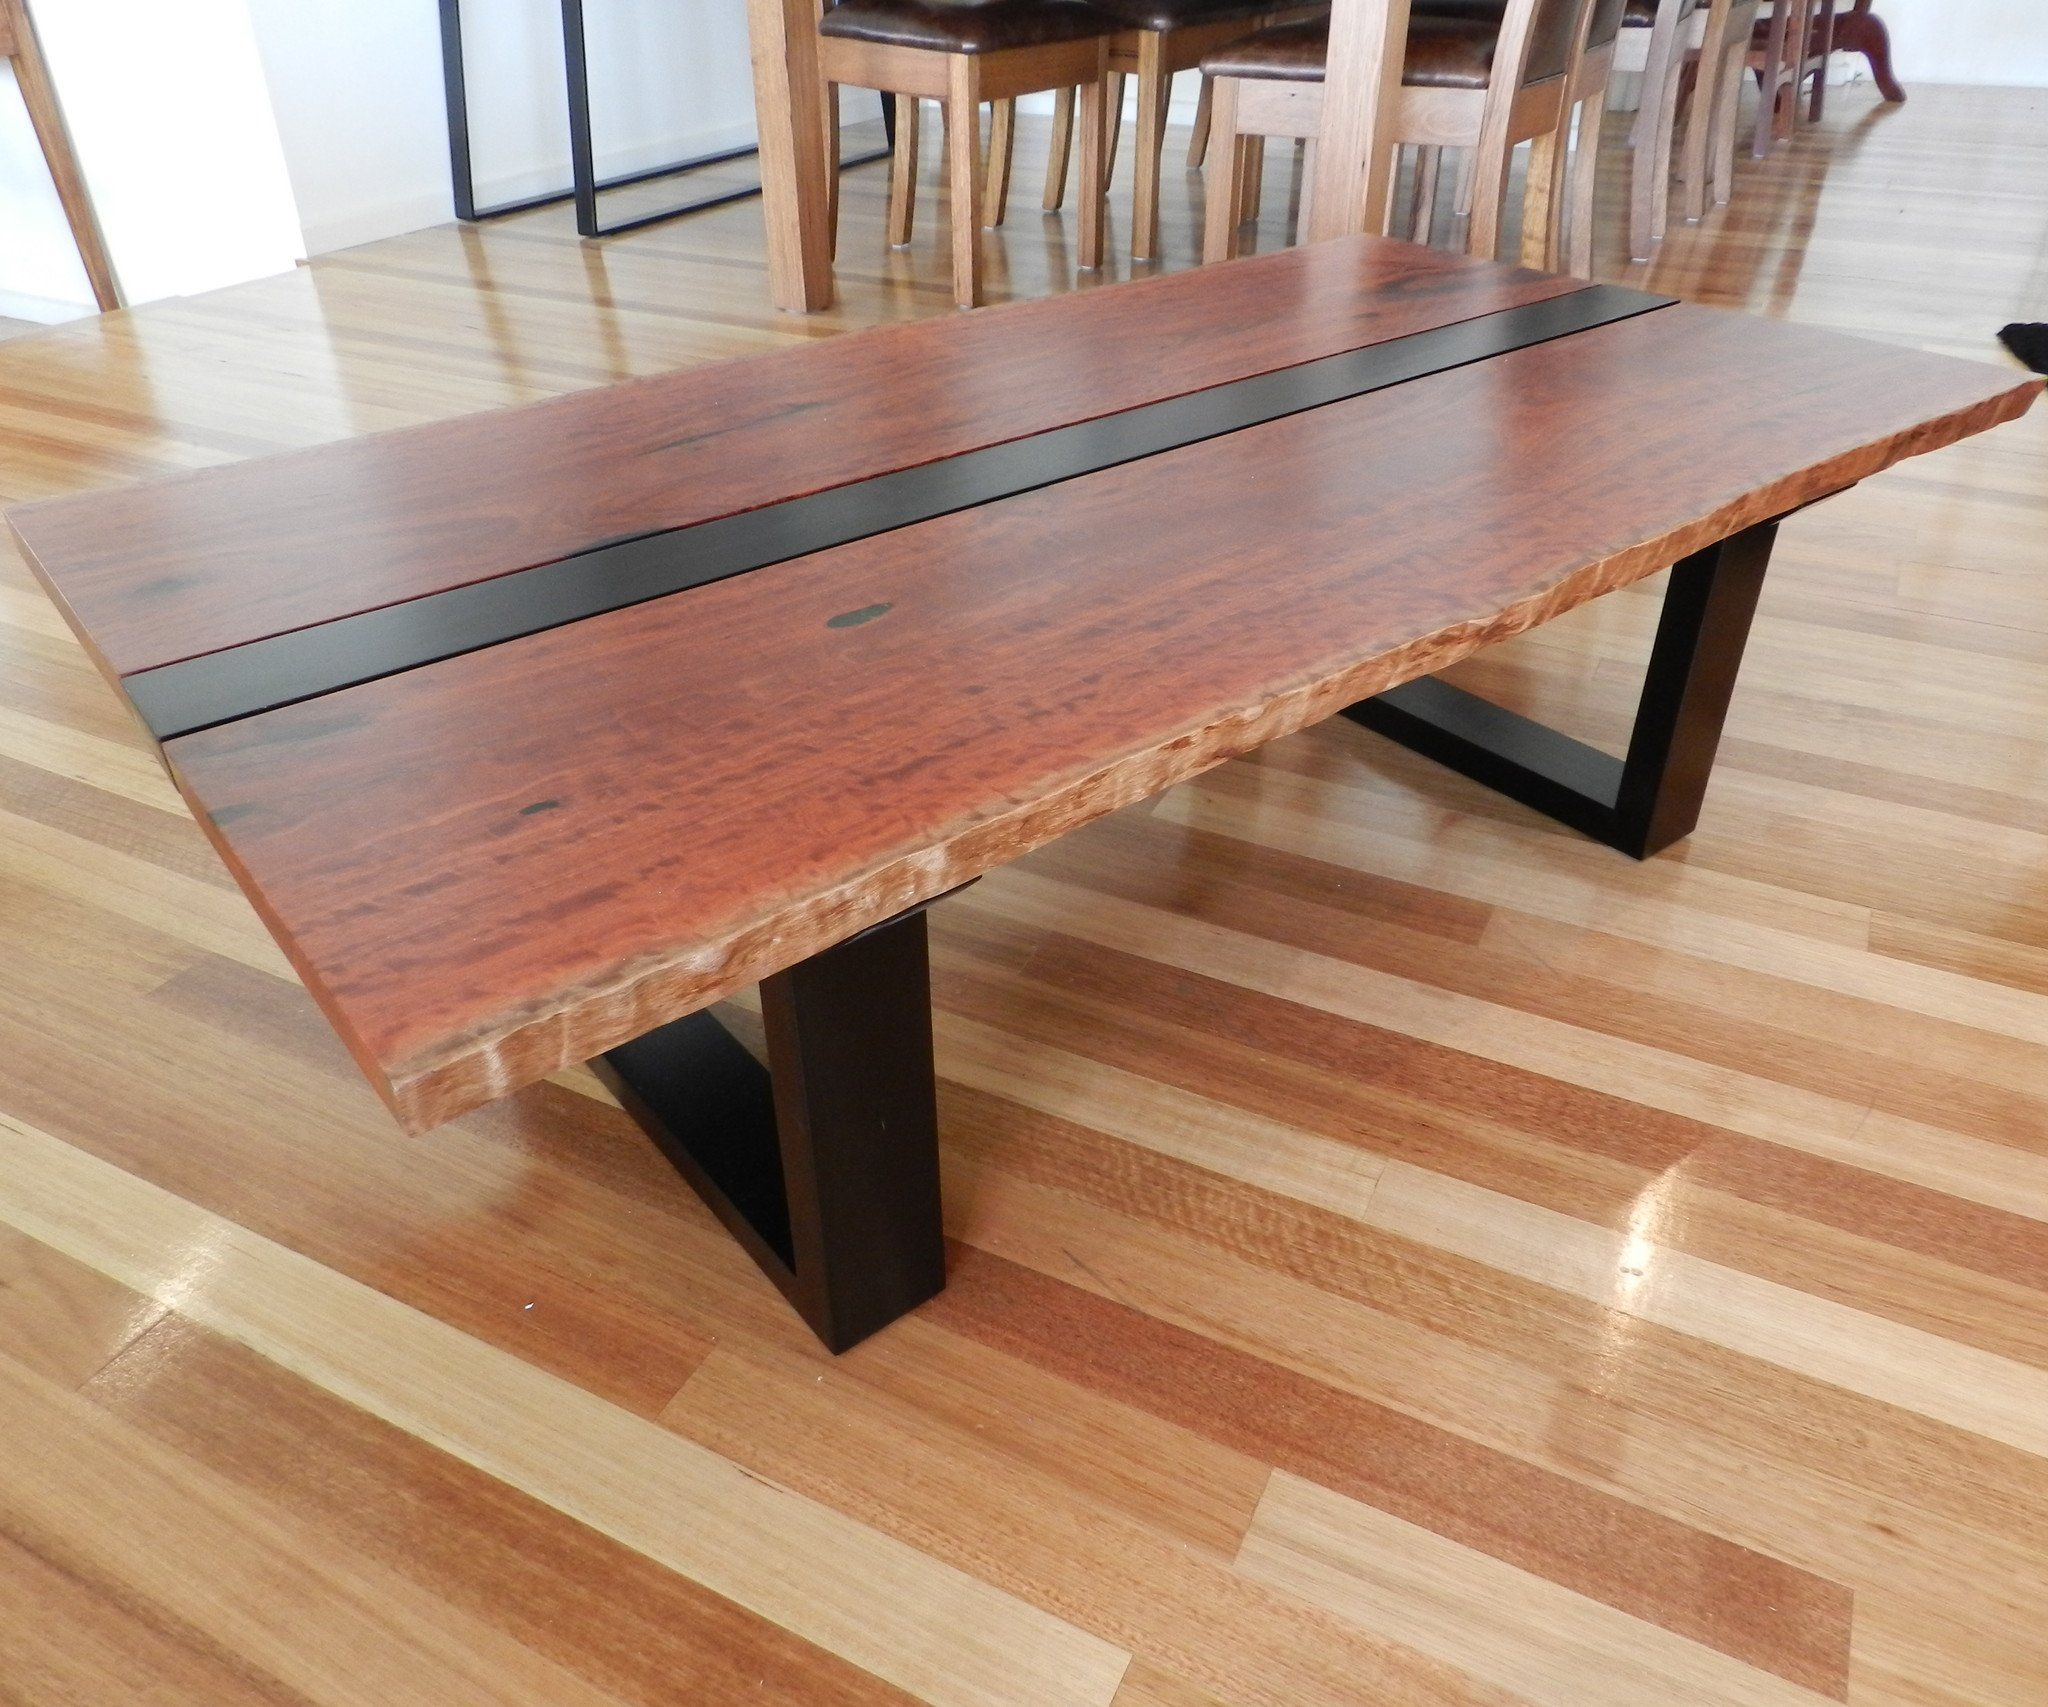 Discover ideas about timber table